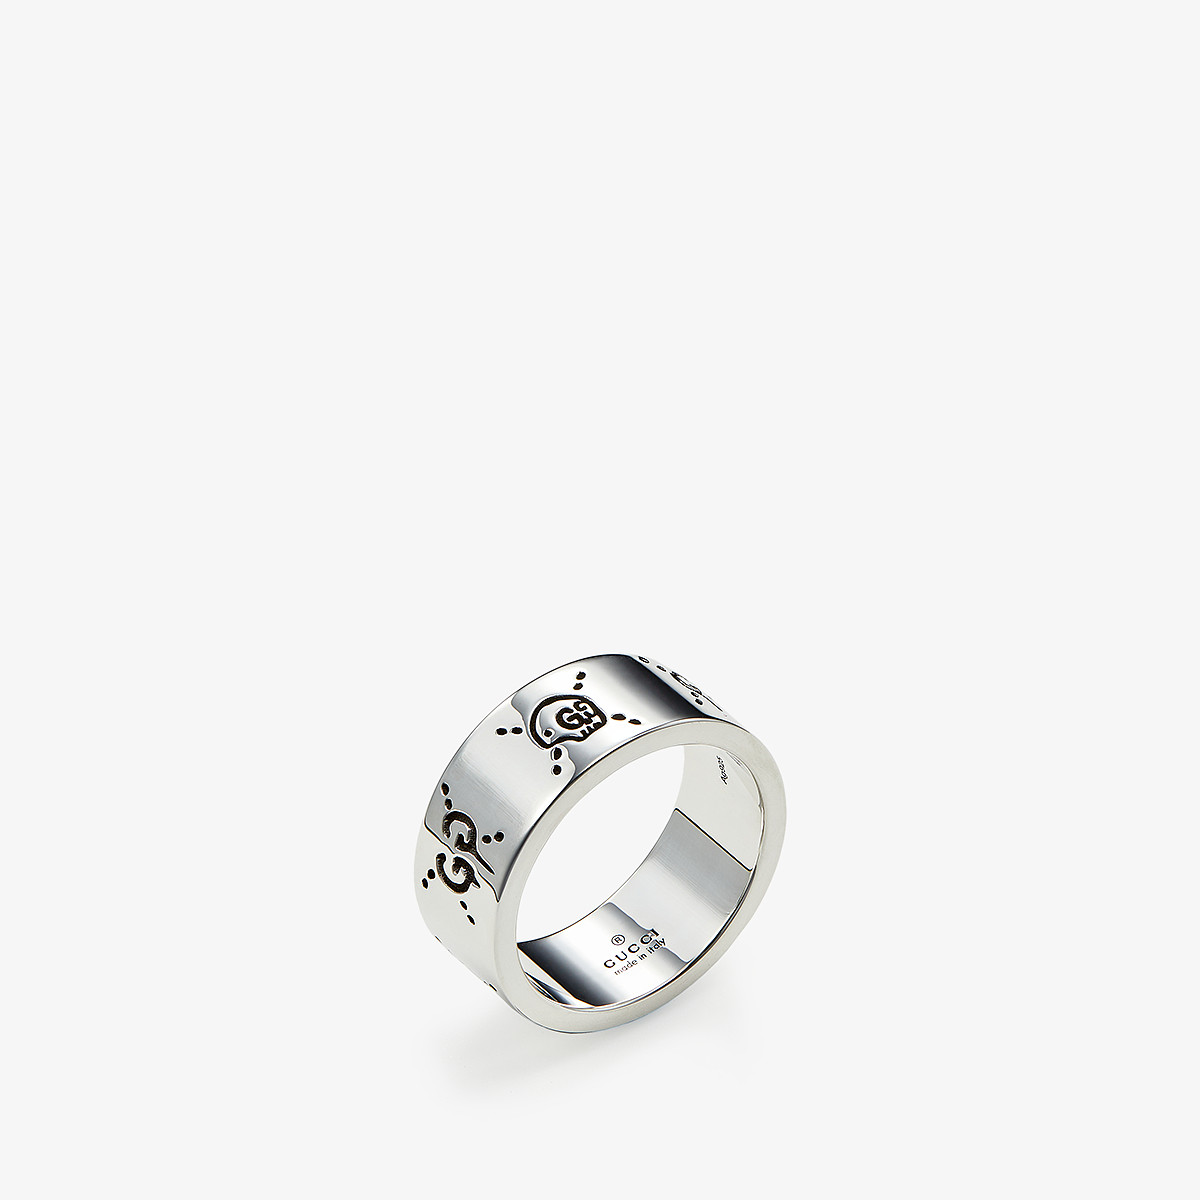 Gucci 9mm Ghost Ring